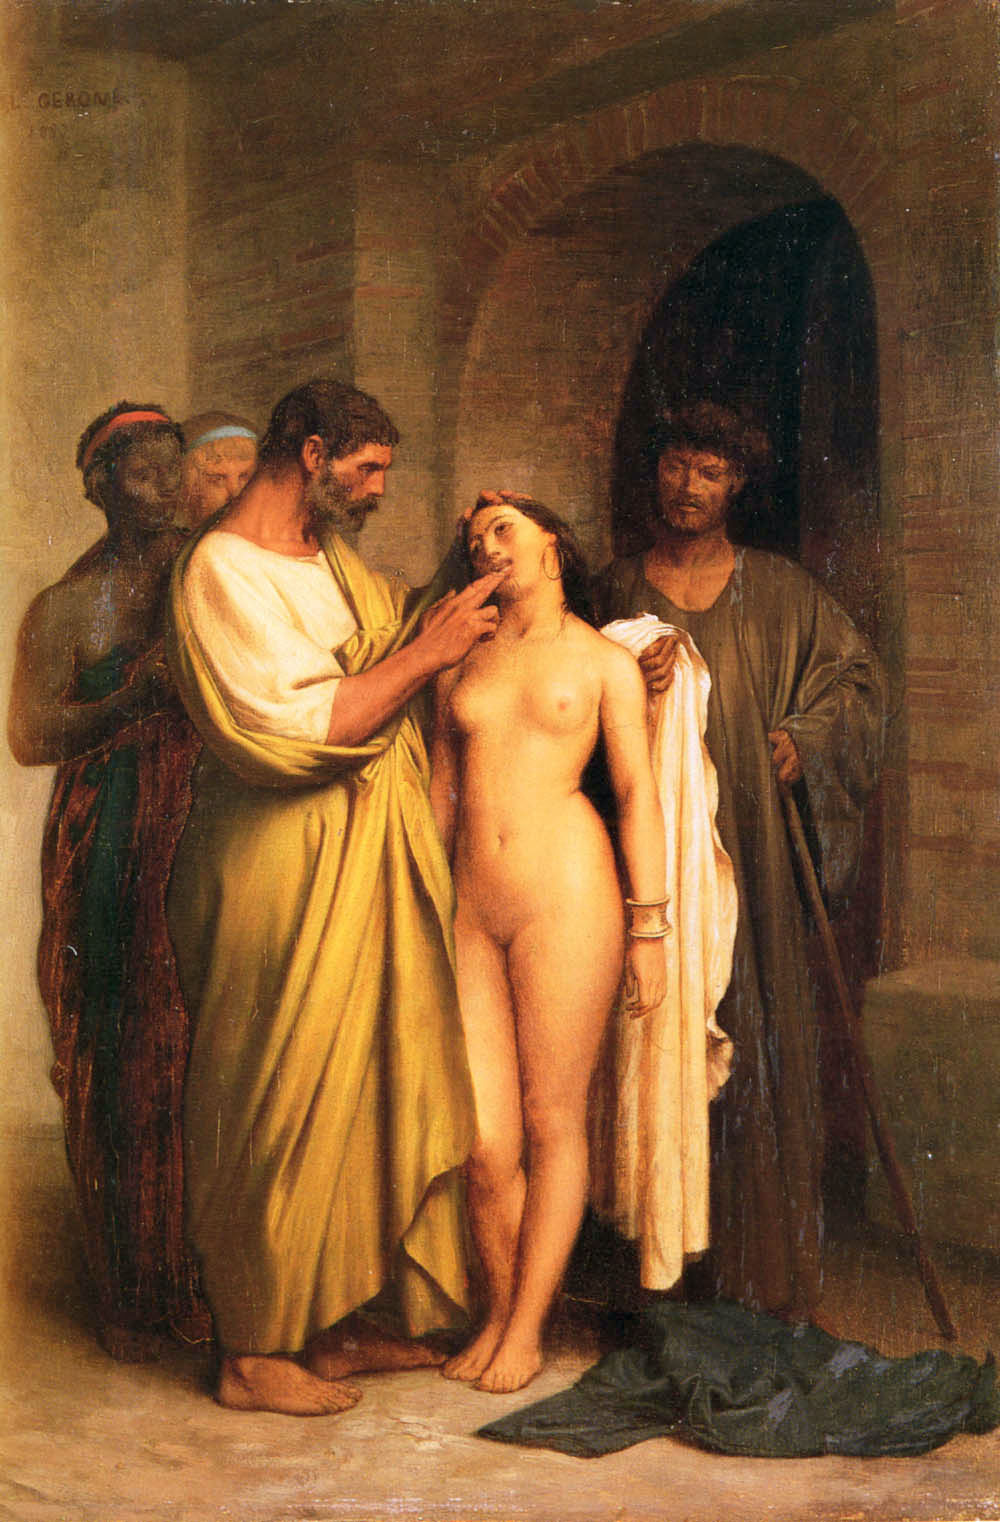 http://uploads6.wikipaintings.org/images/jean-leon-gerome/purchase-of-a-slave.jpg